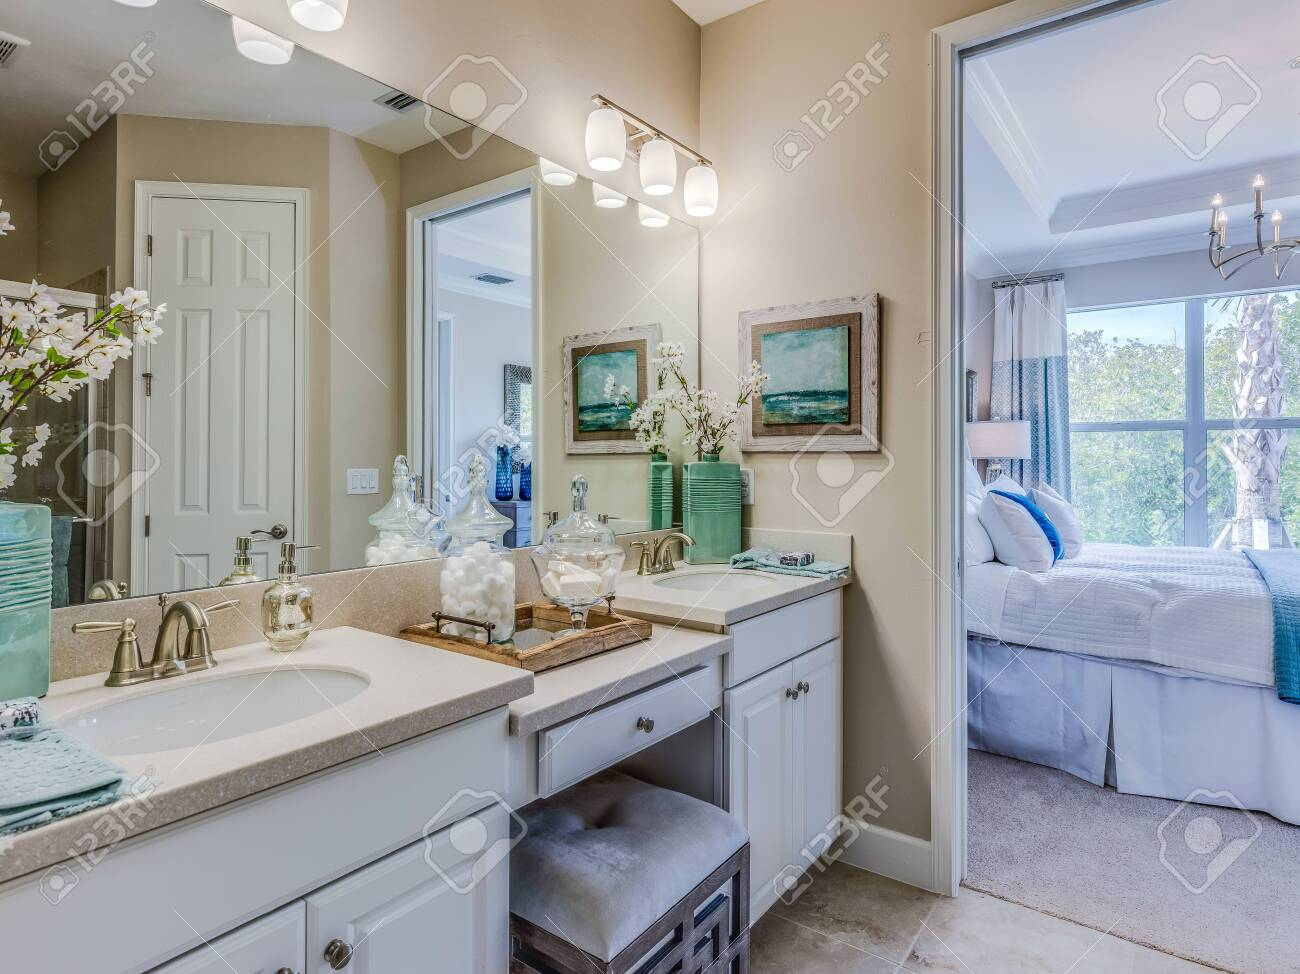 Master Bathroom Vanity And Sink Stock Photo Picture And Royalty Free Image Image 143253842